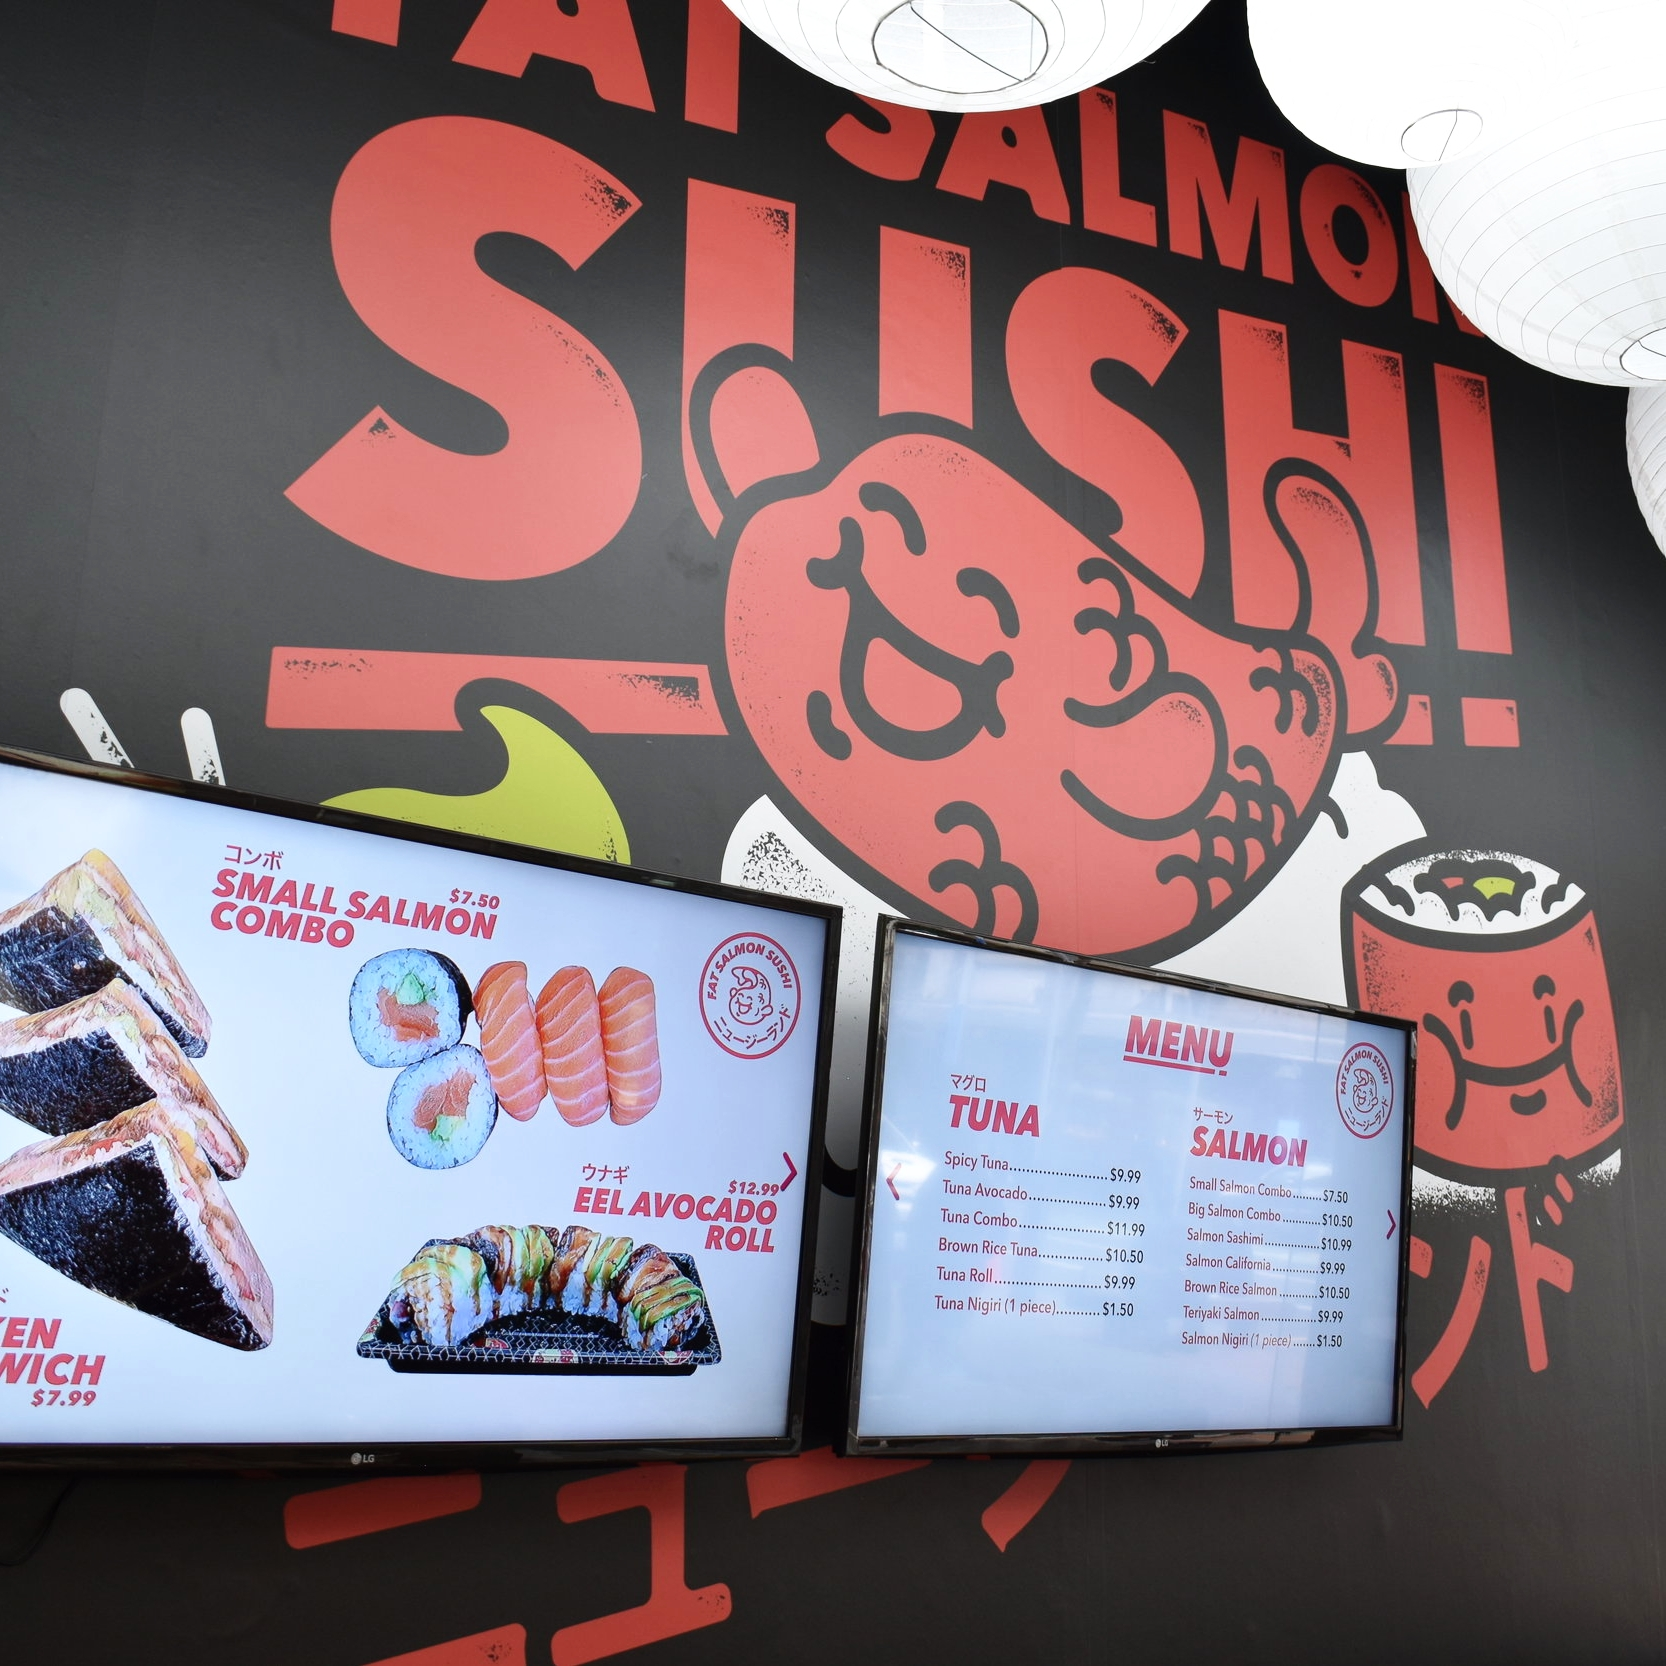 FAT SALMON SUSHI - A new look for this Auckland CBD sushi store...